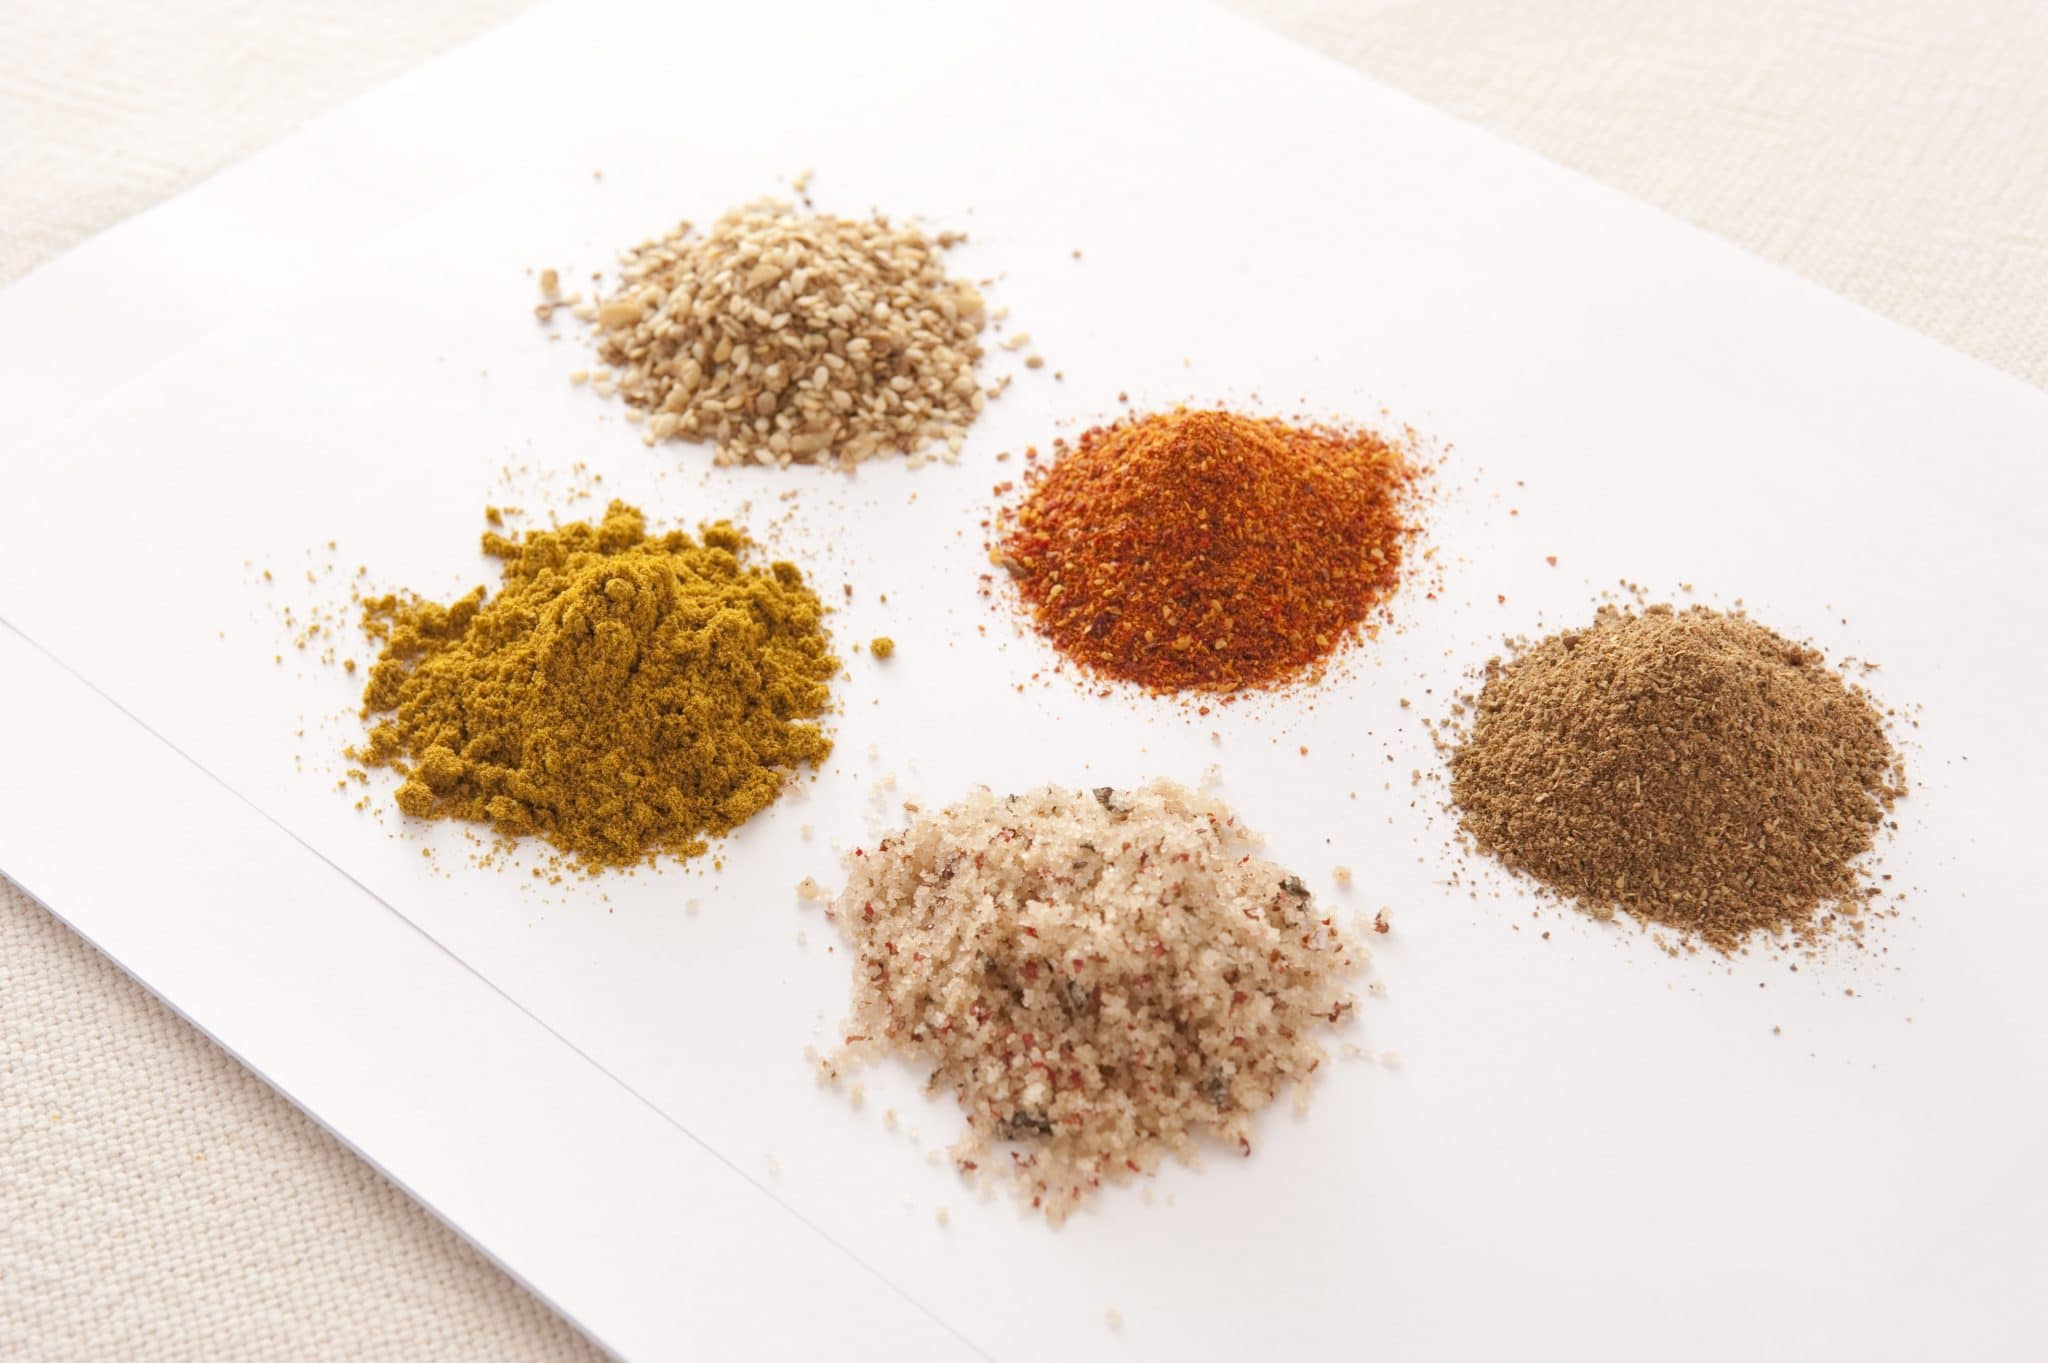 5 spice blend, chinese five spice blend